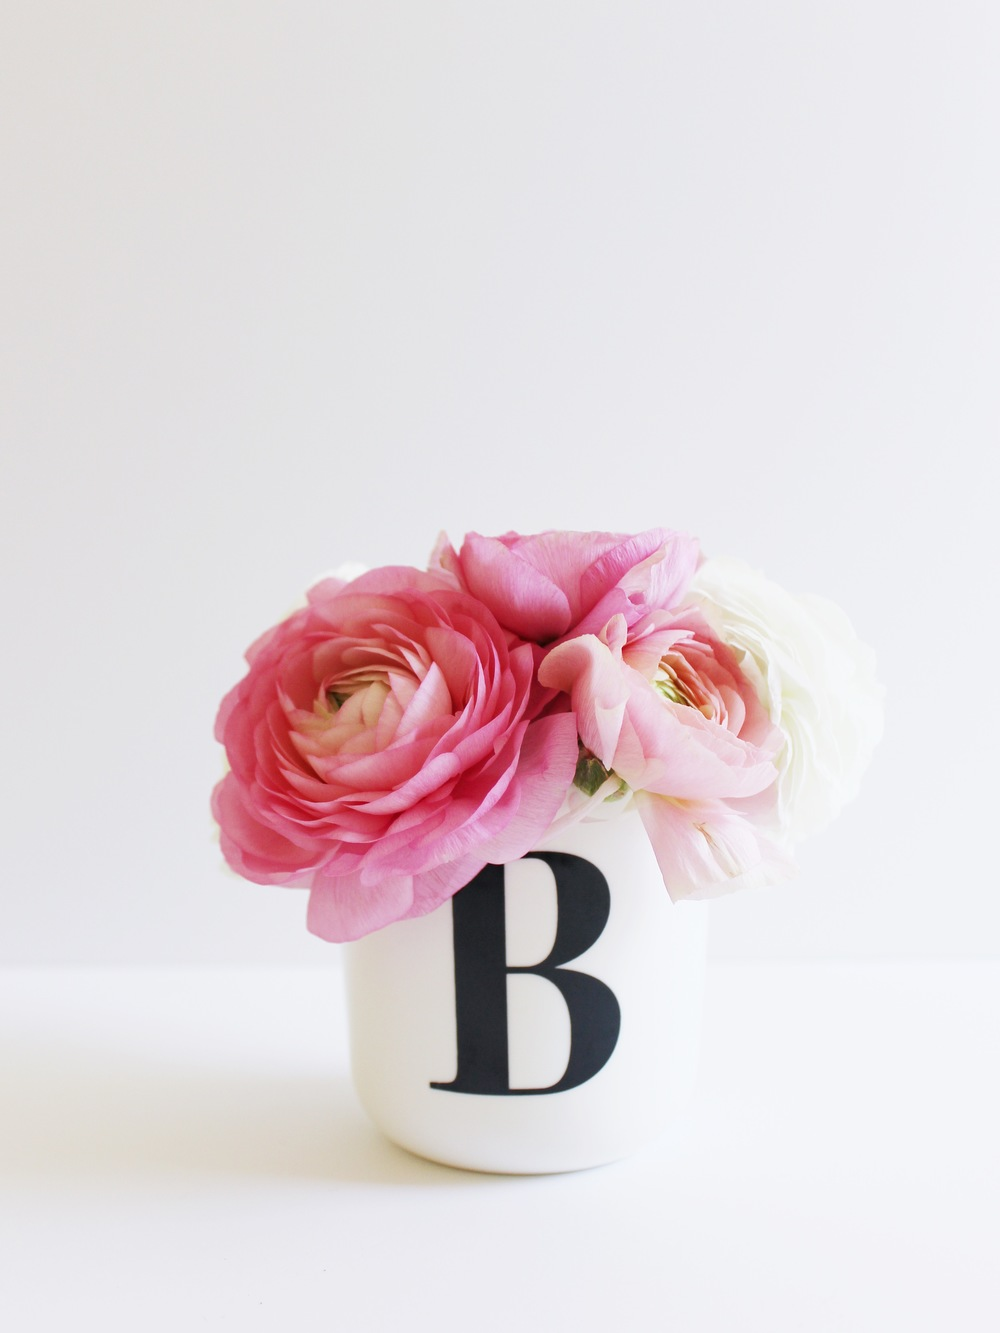 Pink and white ranunculus flowers in a monogrammed bud vase.